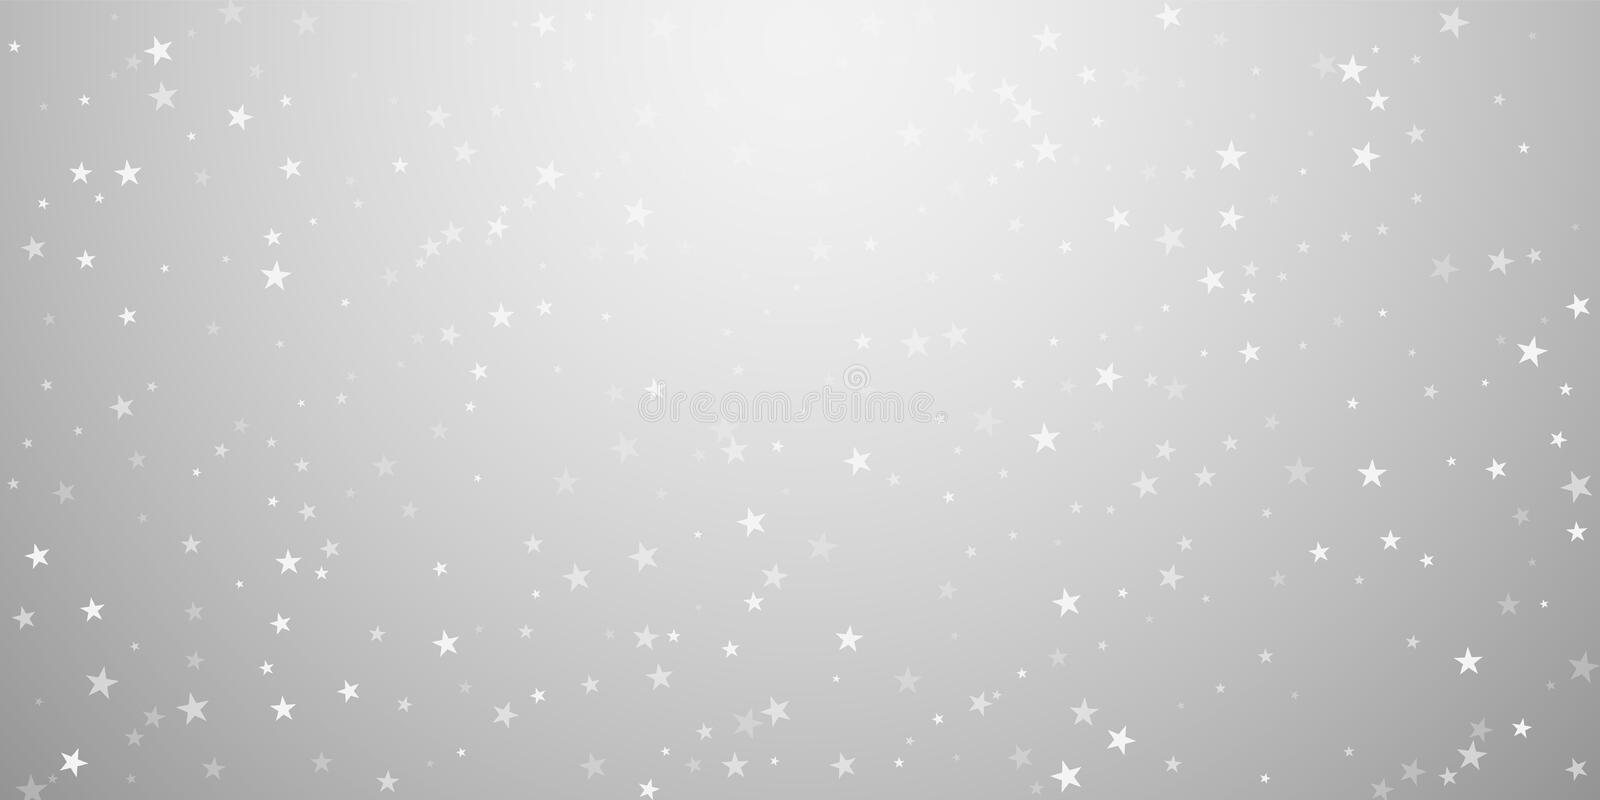 Random falling stars Christmas background. Subtle. Flying snow flakes and stars on light grey background. Awesome winter silver snowflake overlay template royalty free illustration